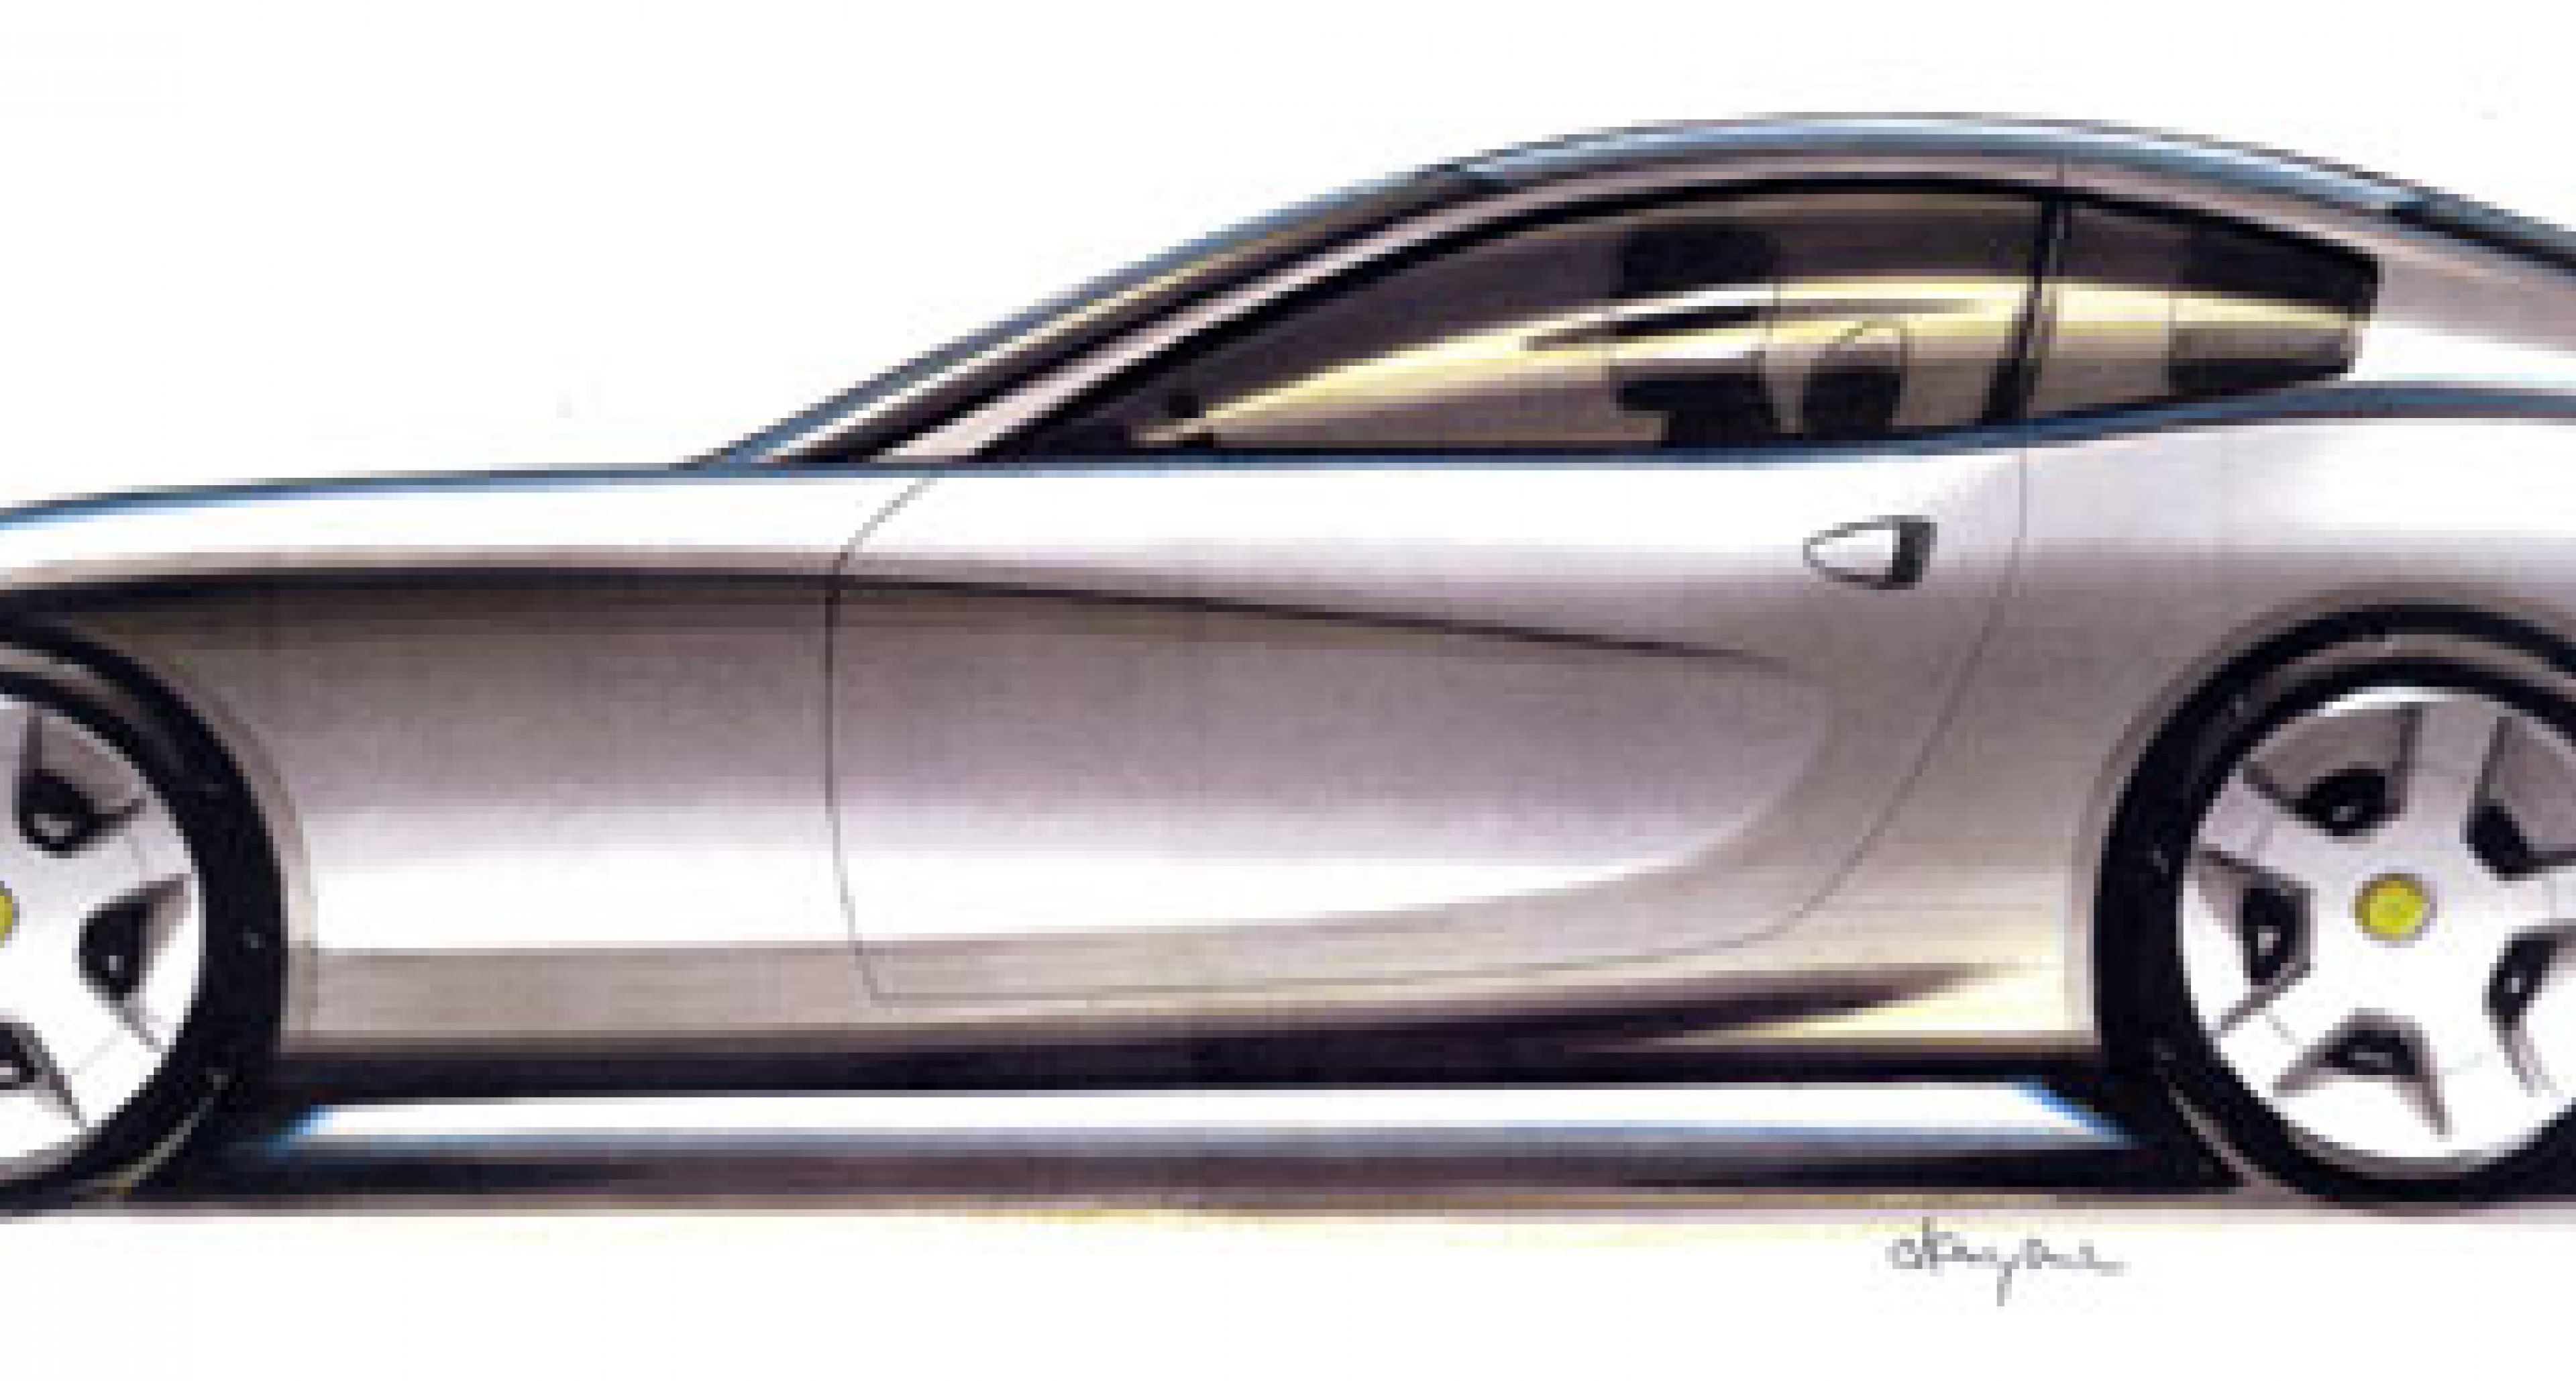 Ferrari show early design sketches of new  for 2004 2 + 2 GT car